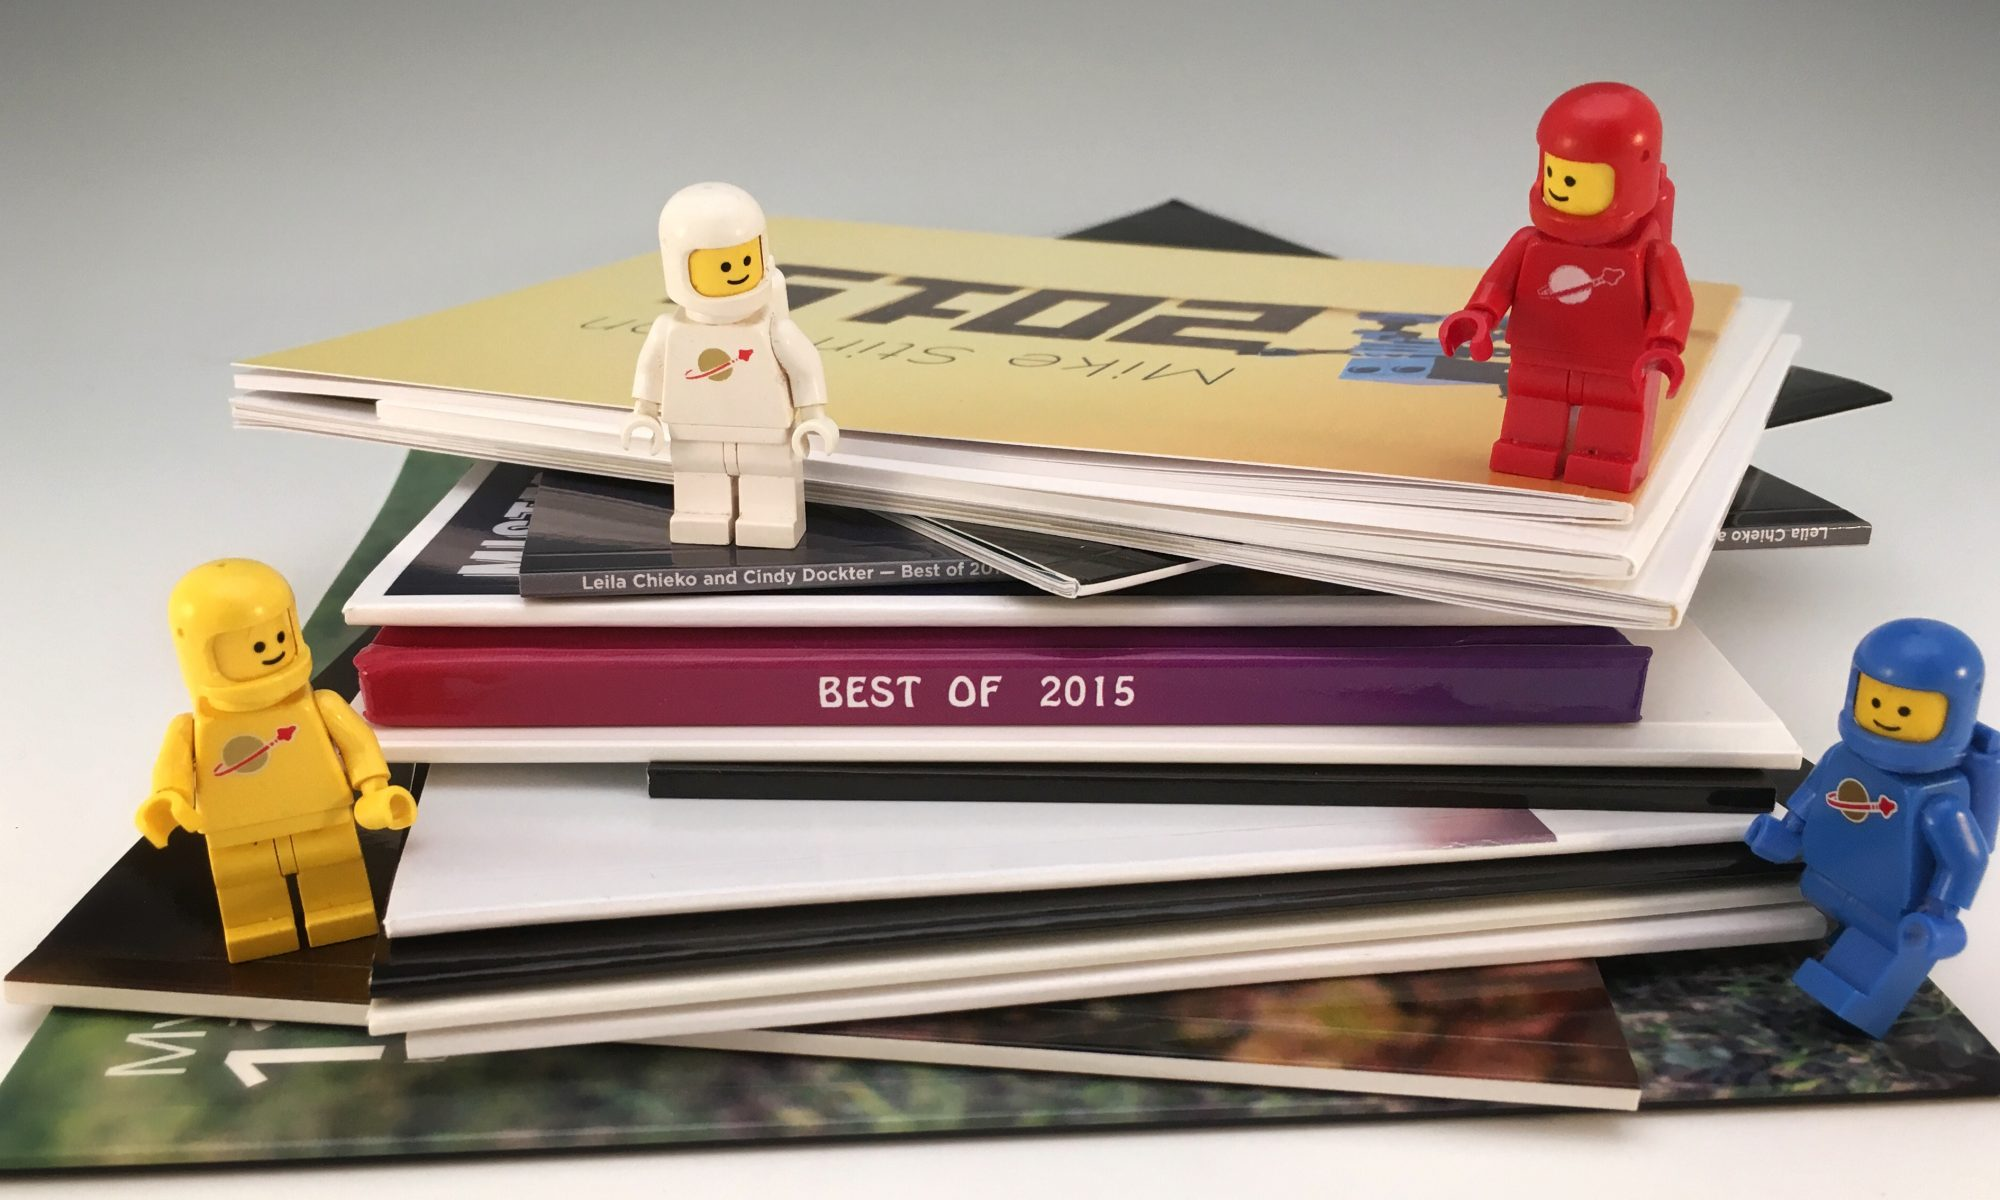 15 toy photography books in a short stack with four classic lego spacemen.